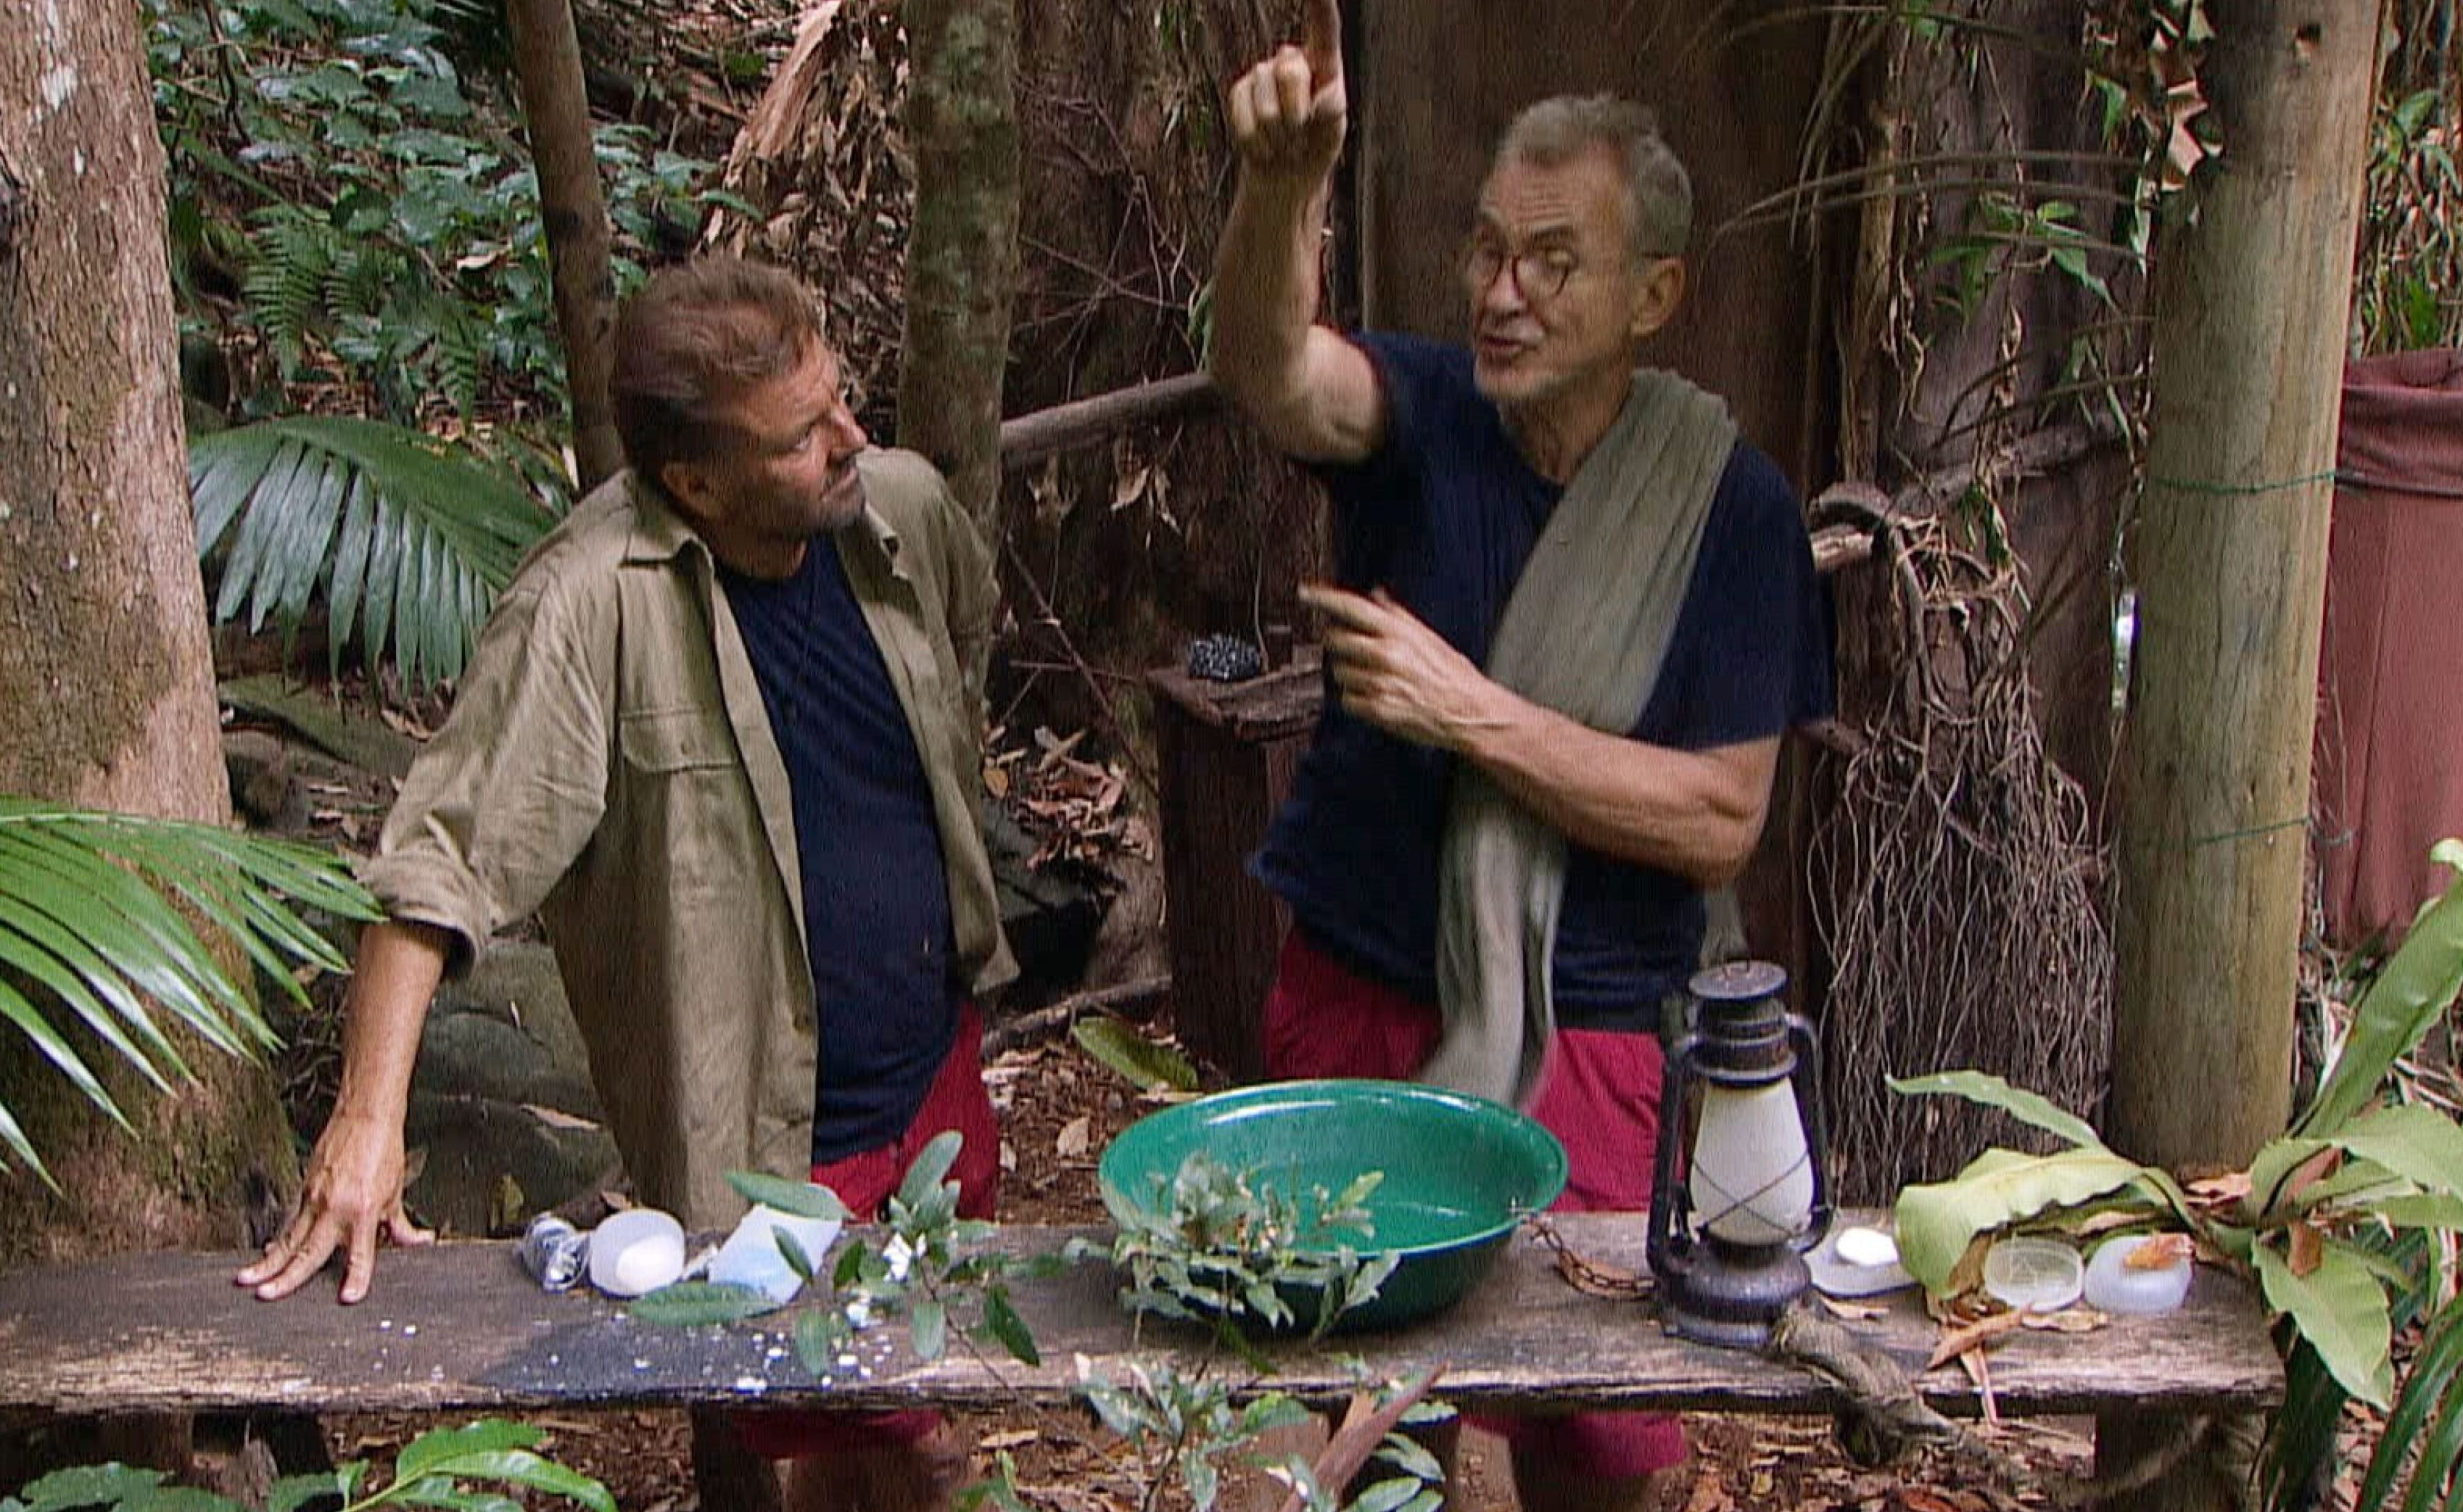 Larry Lamb and Martin Roberts come to blows in latest I'm A Celeb bust-up